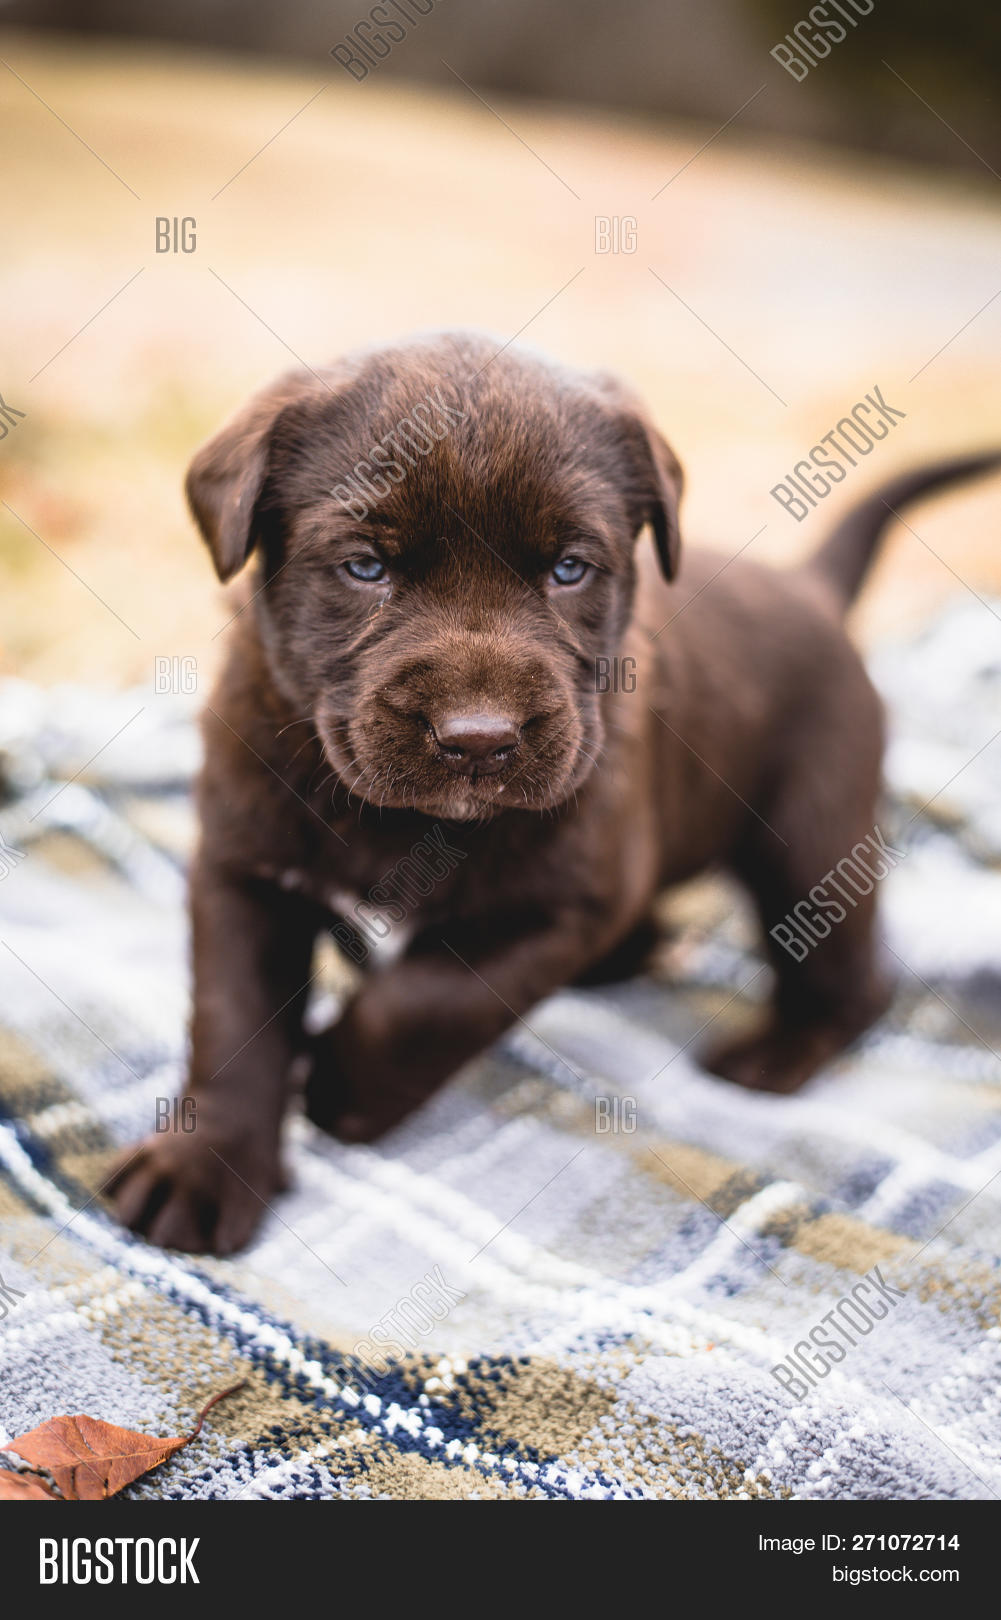 Cute Brown Chocolate Image Photo Free Trial Bigstock